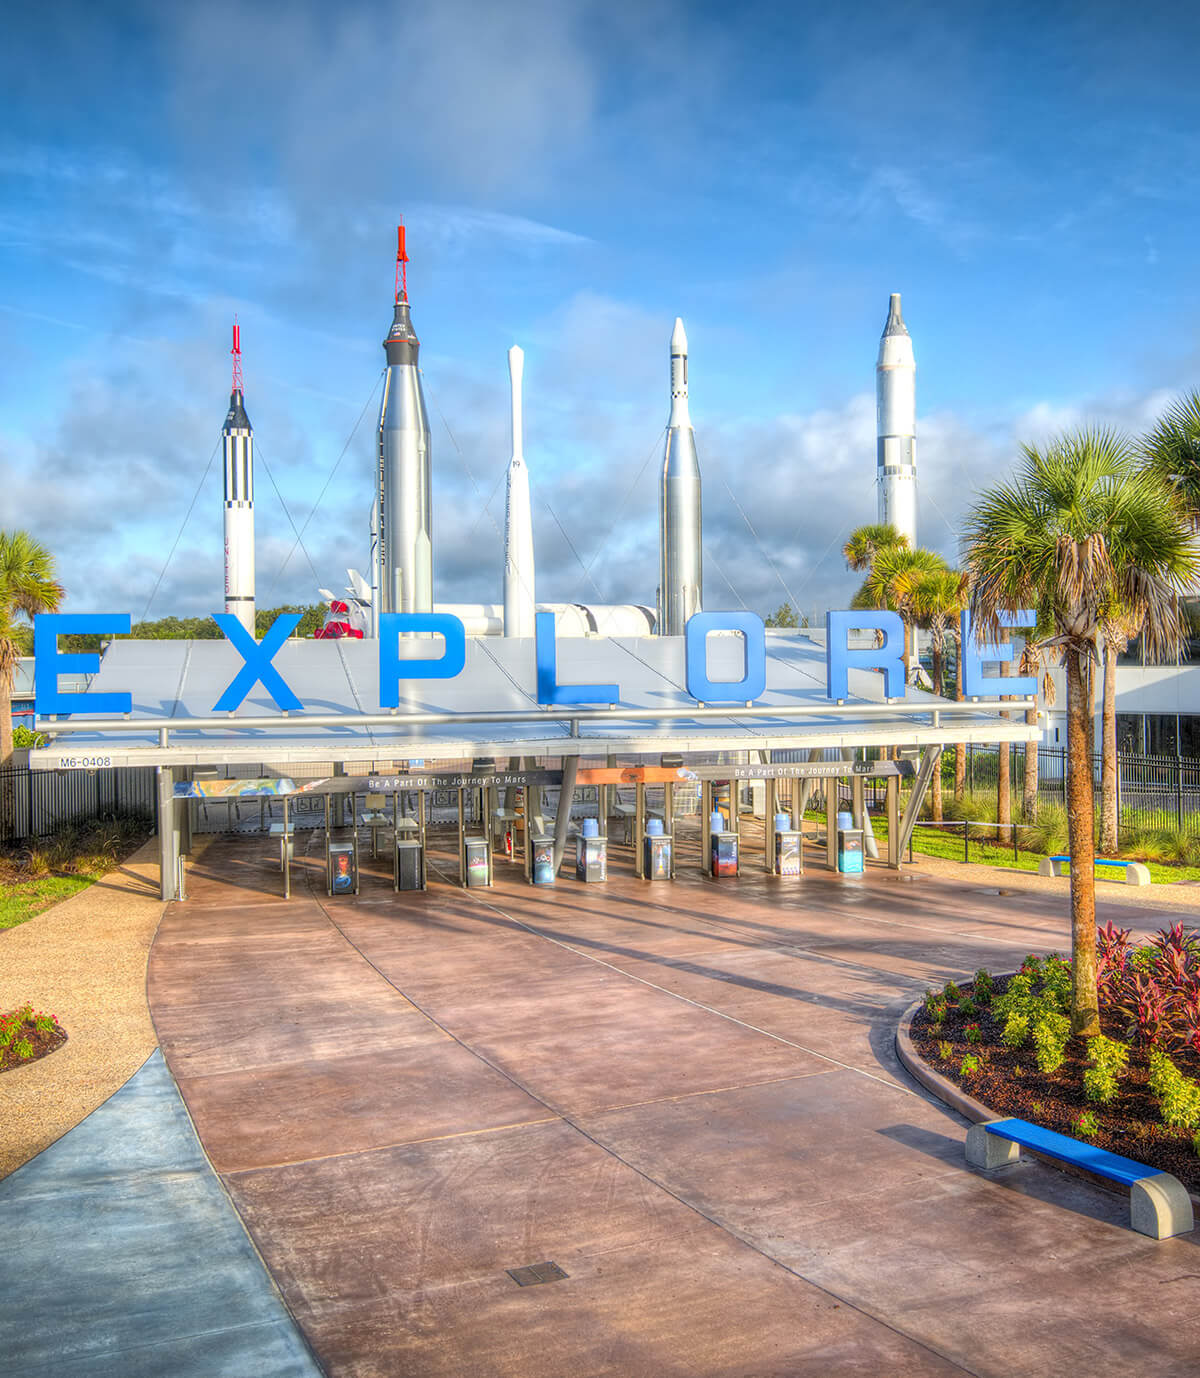 Tours Orlando To Cape Canaveral